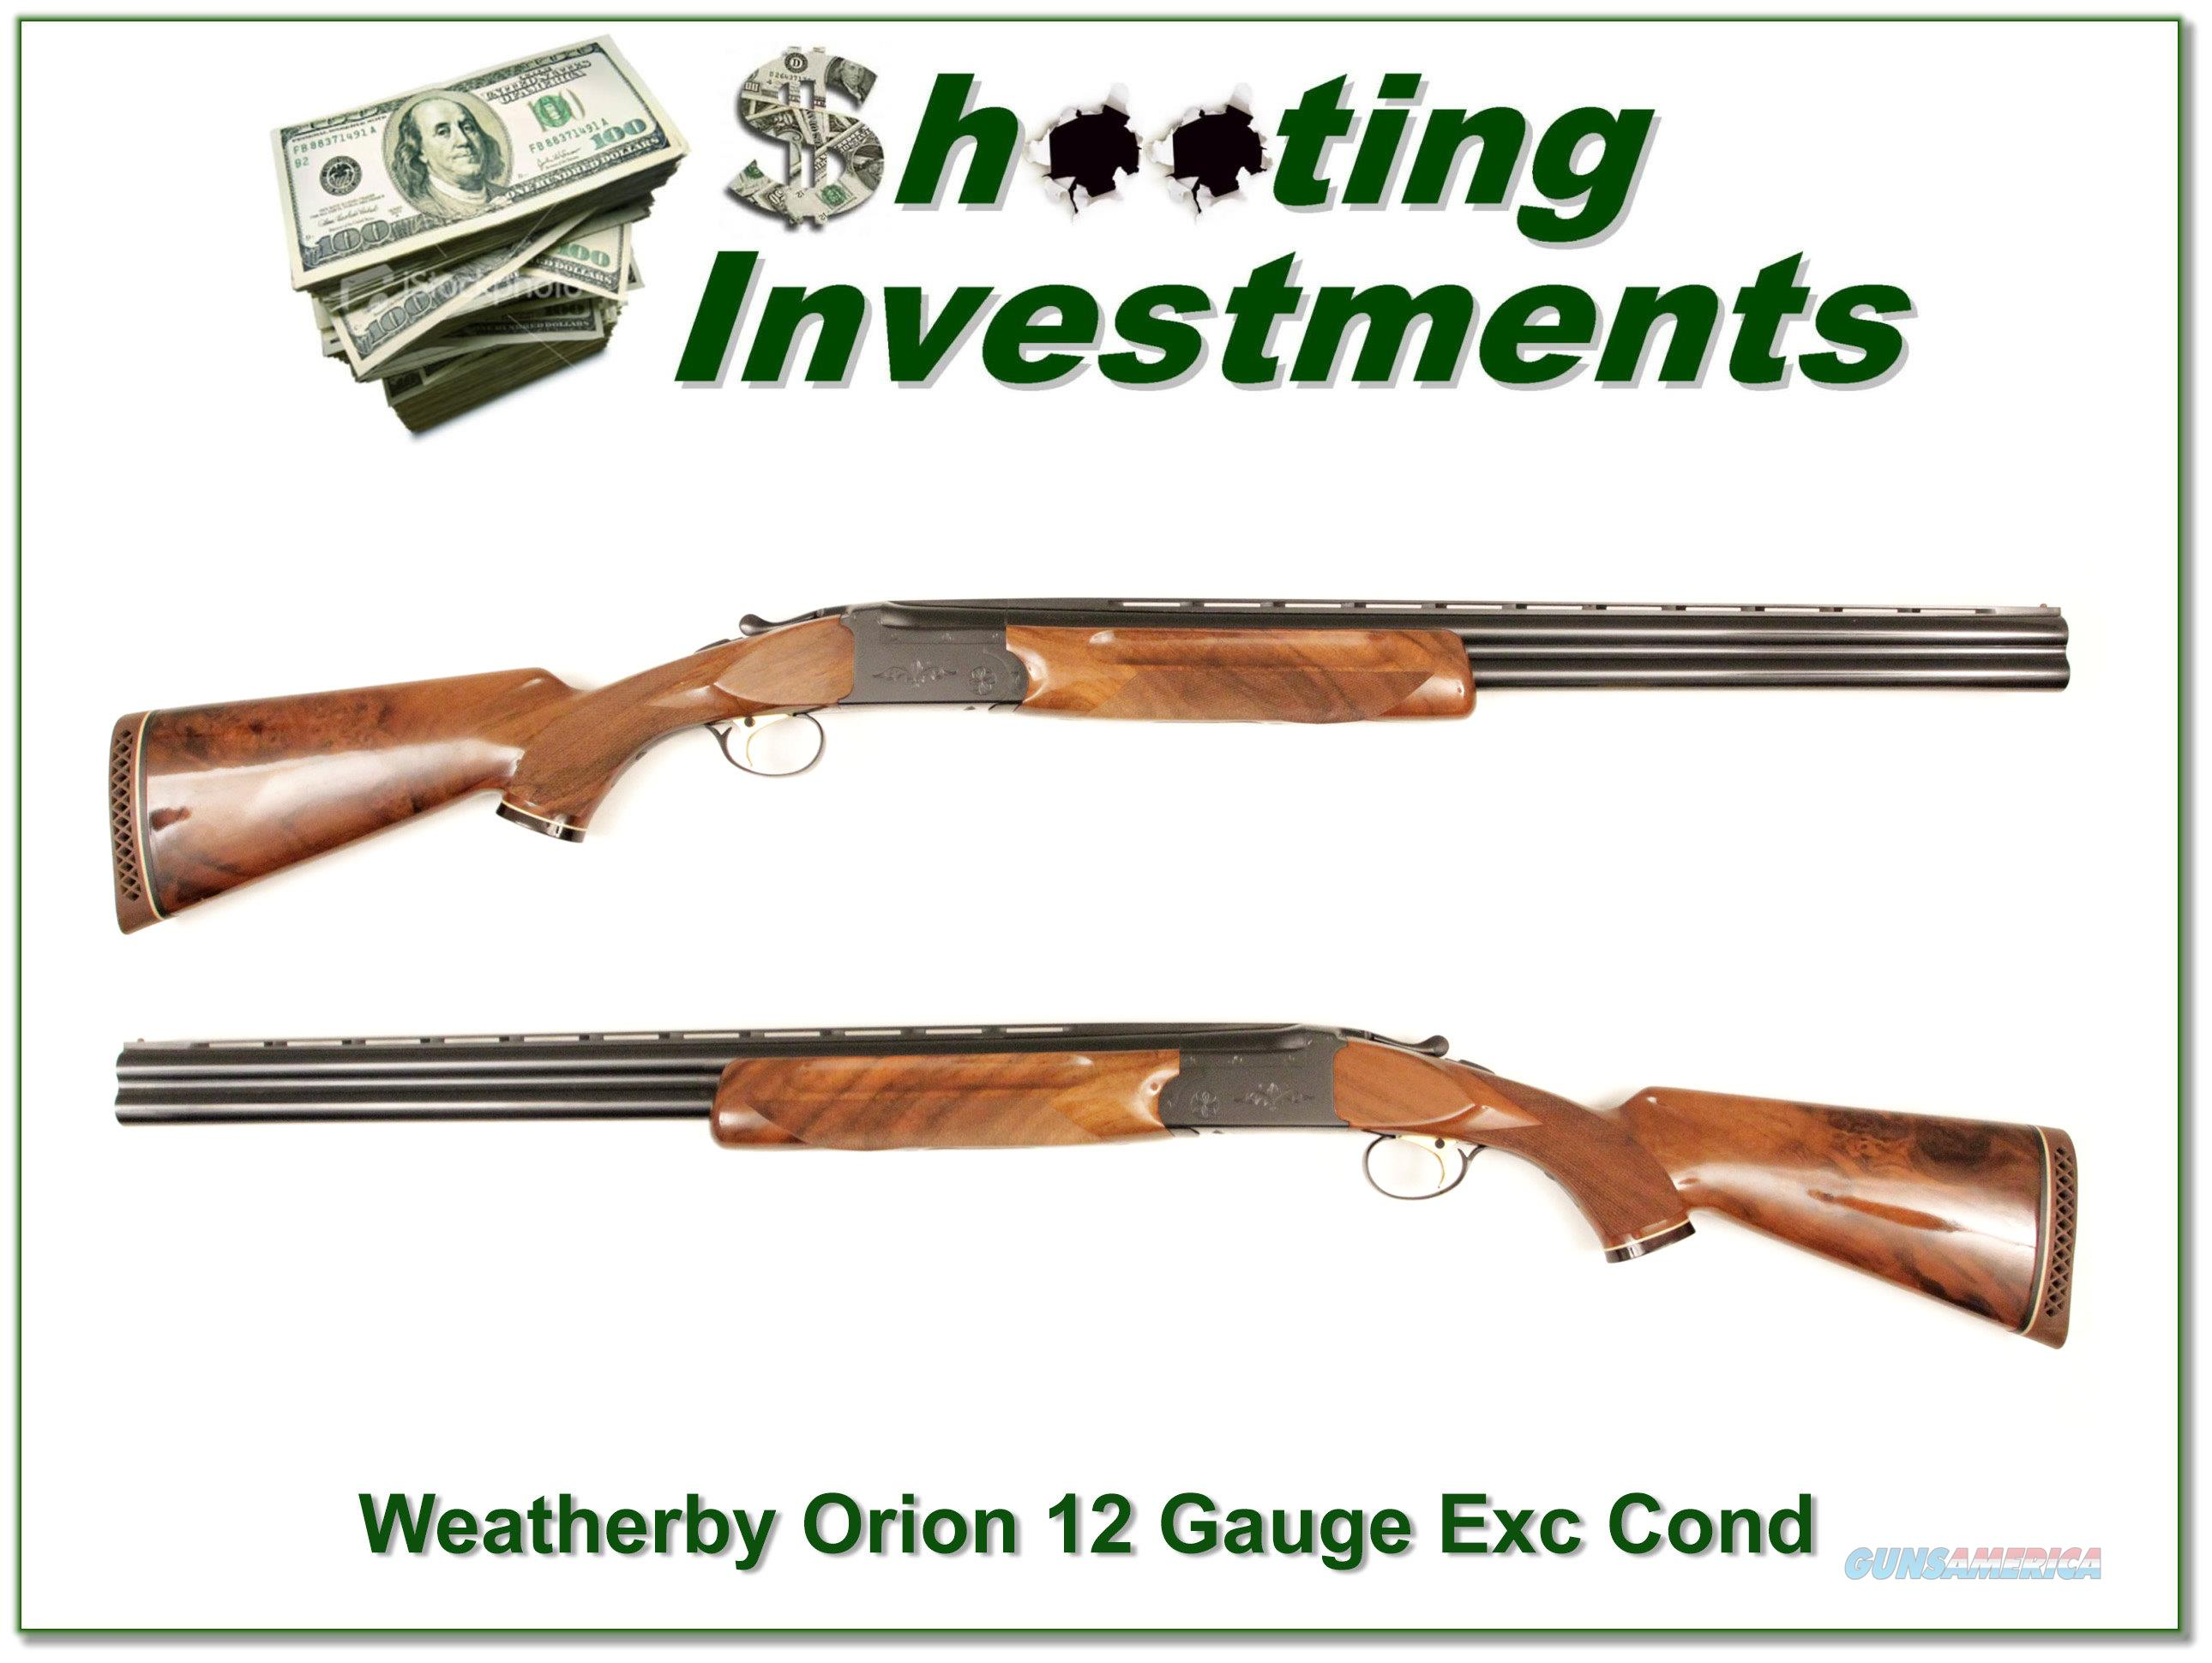 Weatherby Orion 12 Gauge 26in Nice Wood!  Guns > Shotguns > Weatherby Shotguns > Hunting > O/U